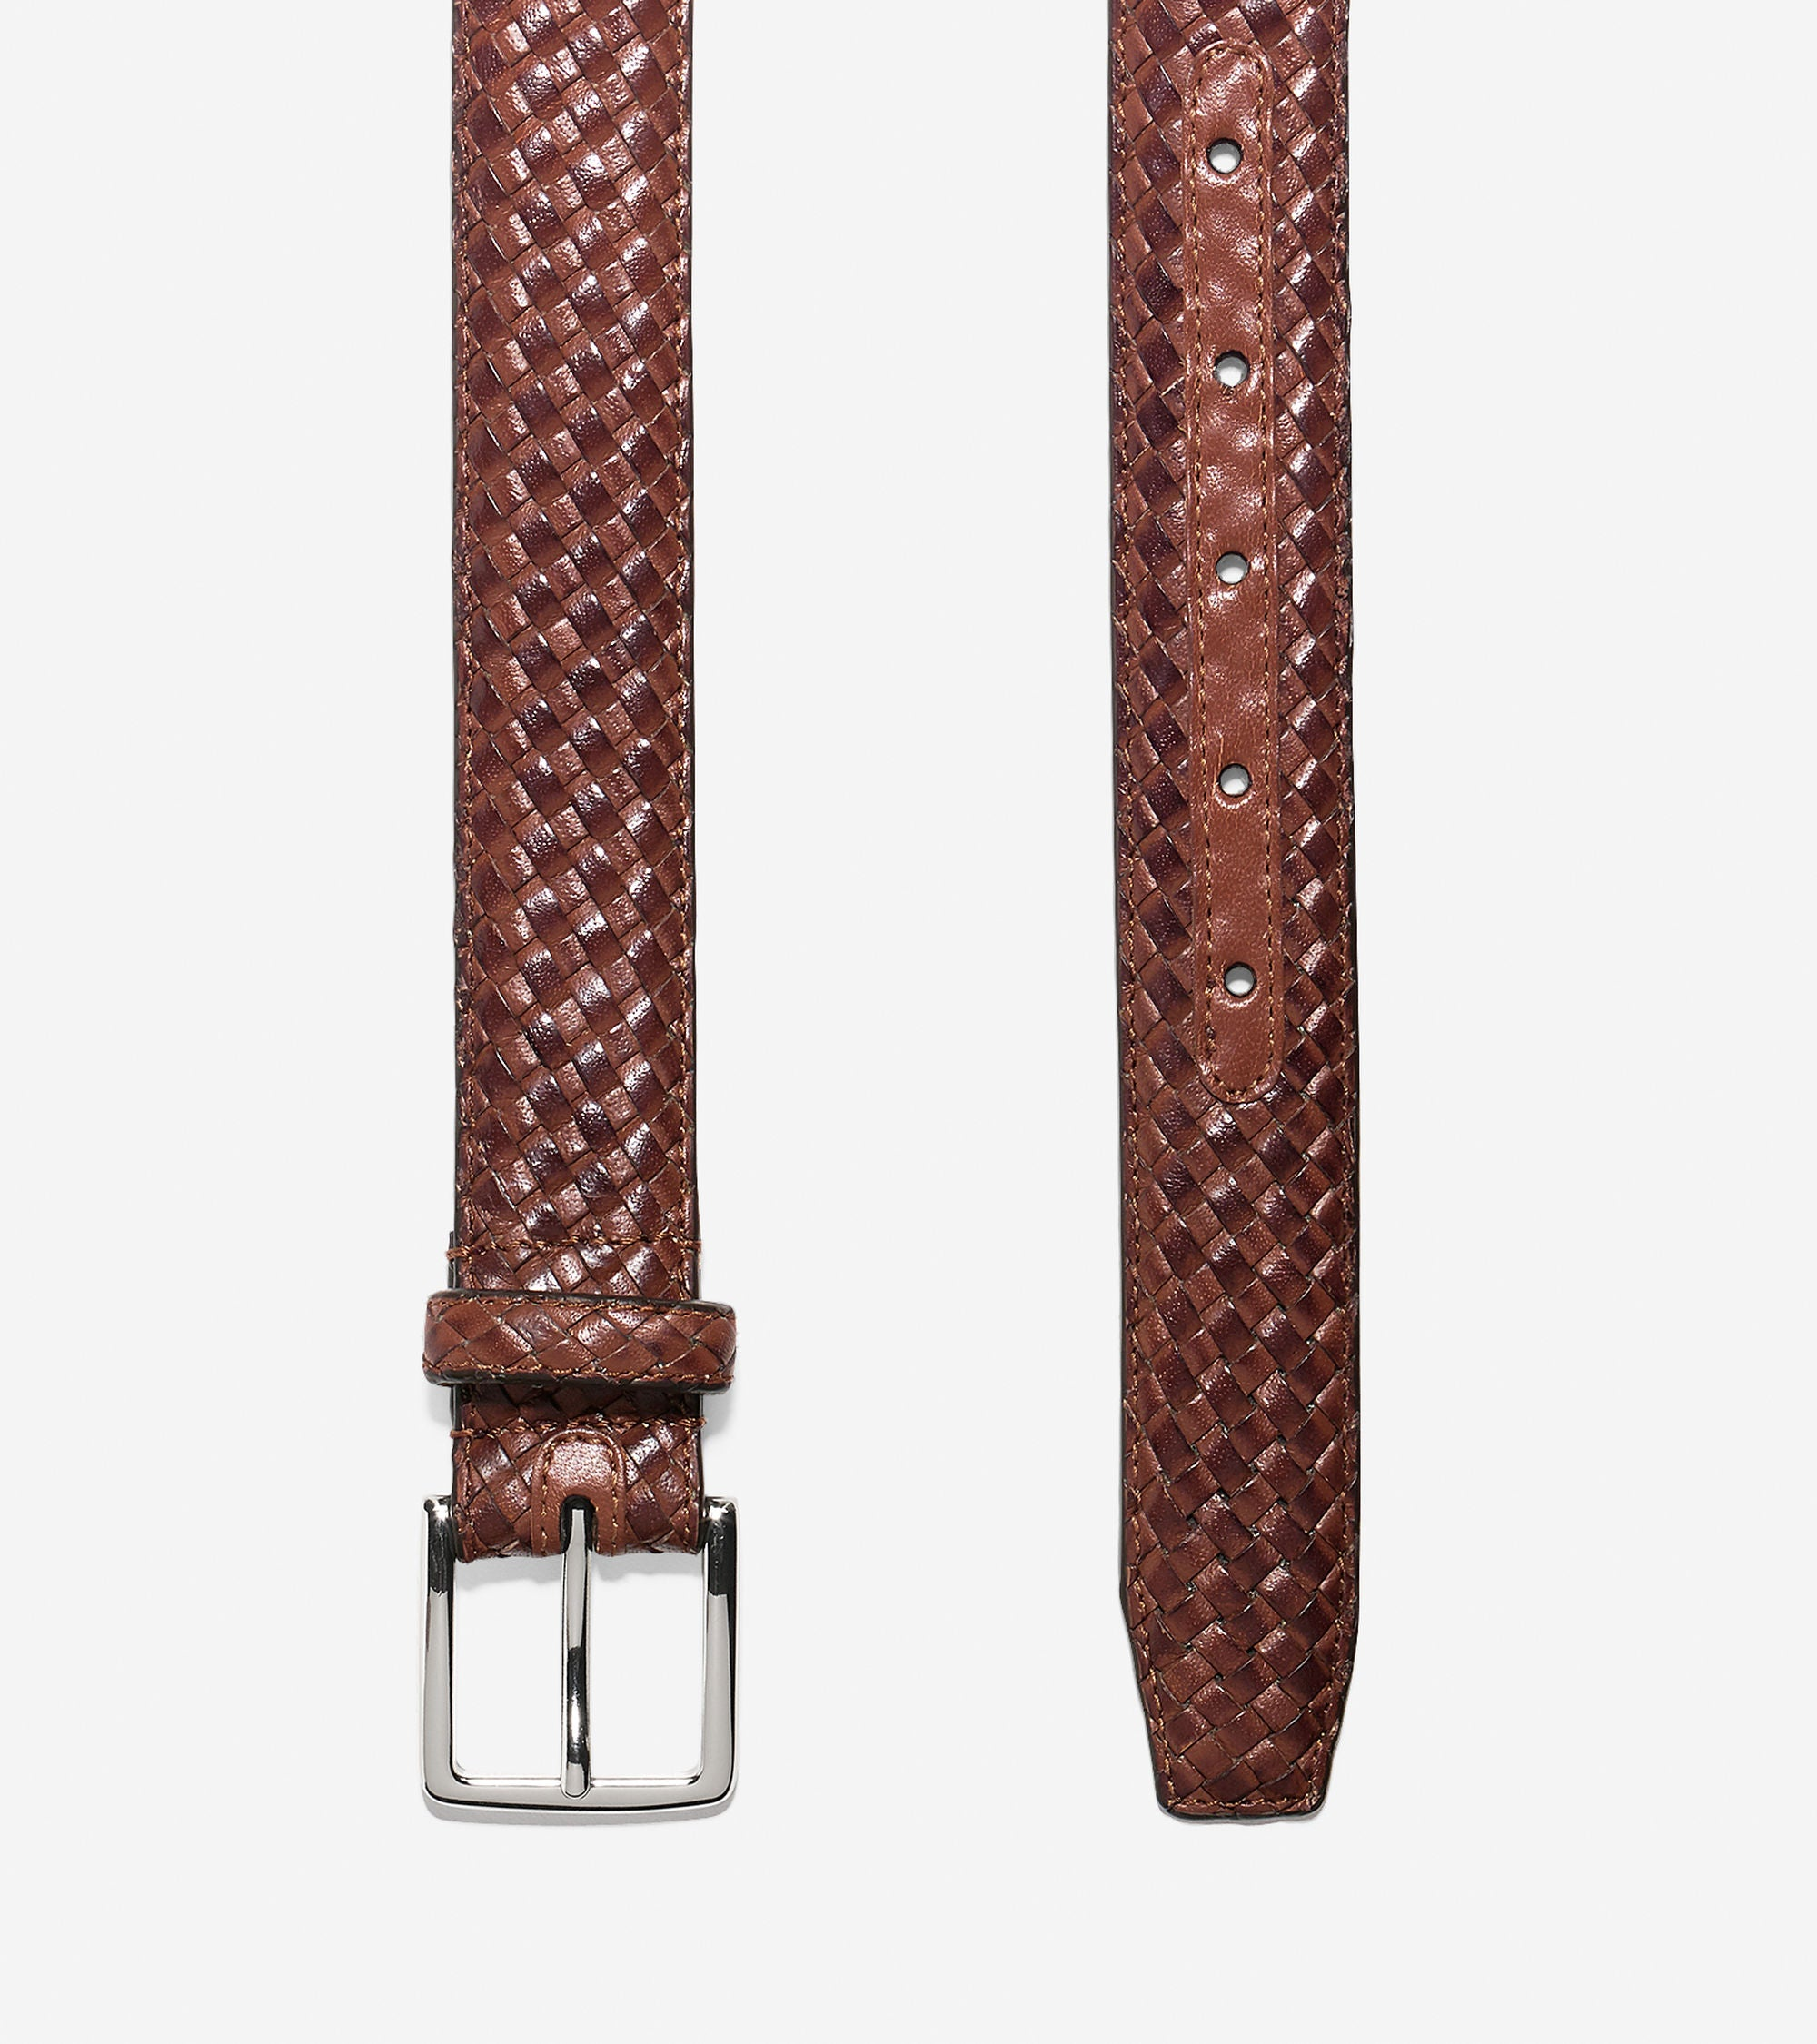 30mm Feather Edge Woven Belt,BELT,Cole Haan, | GentRow.com